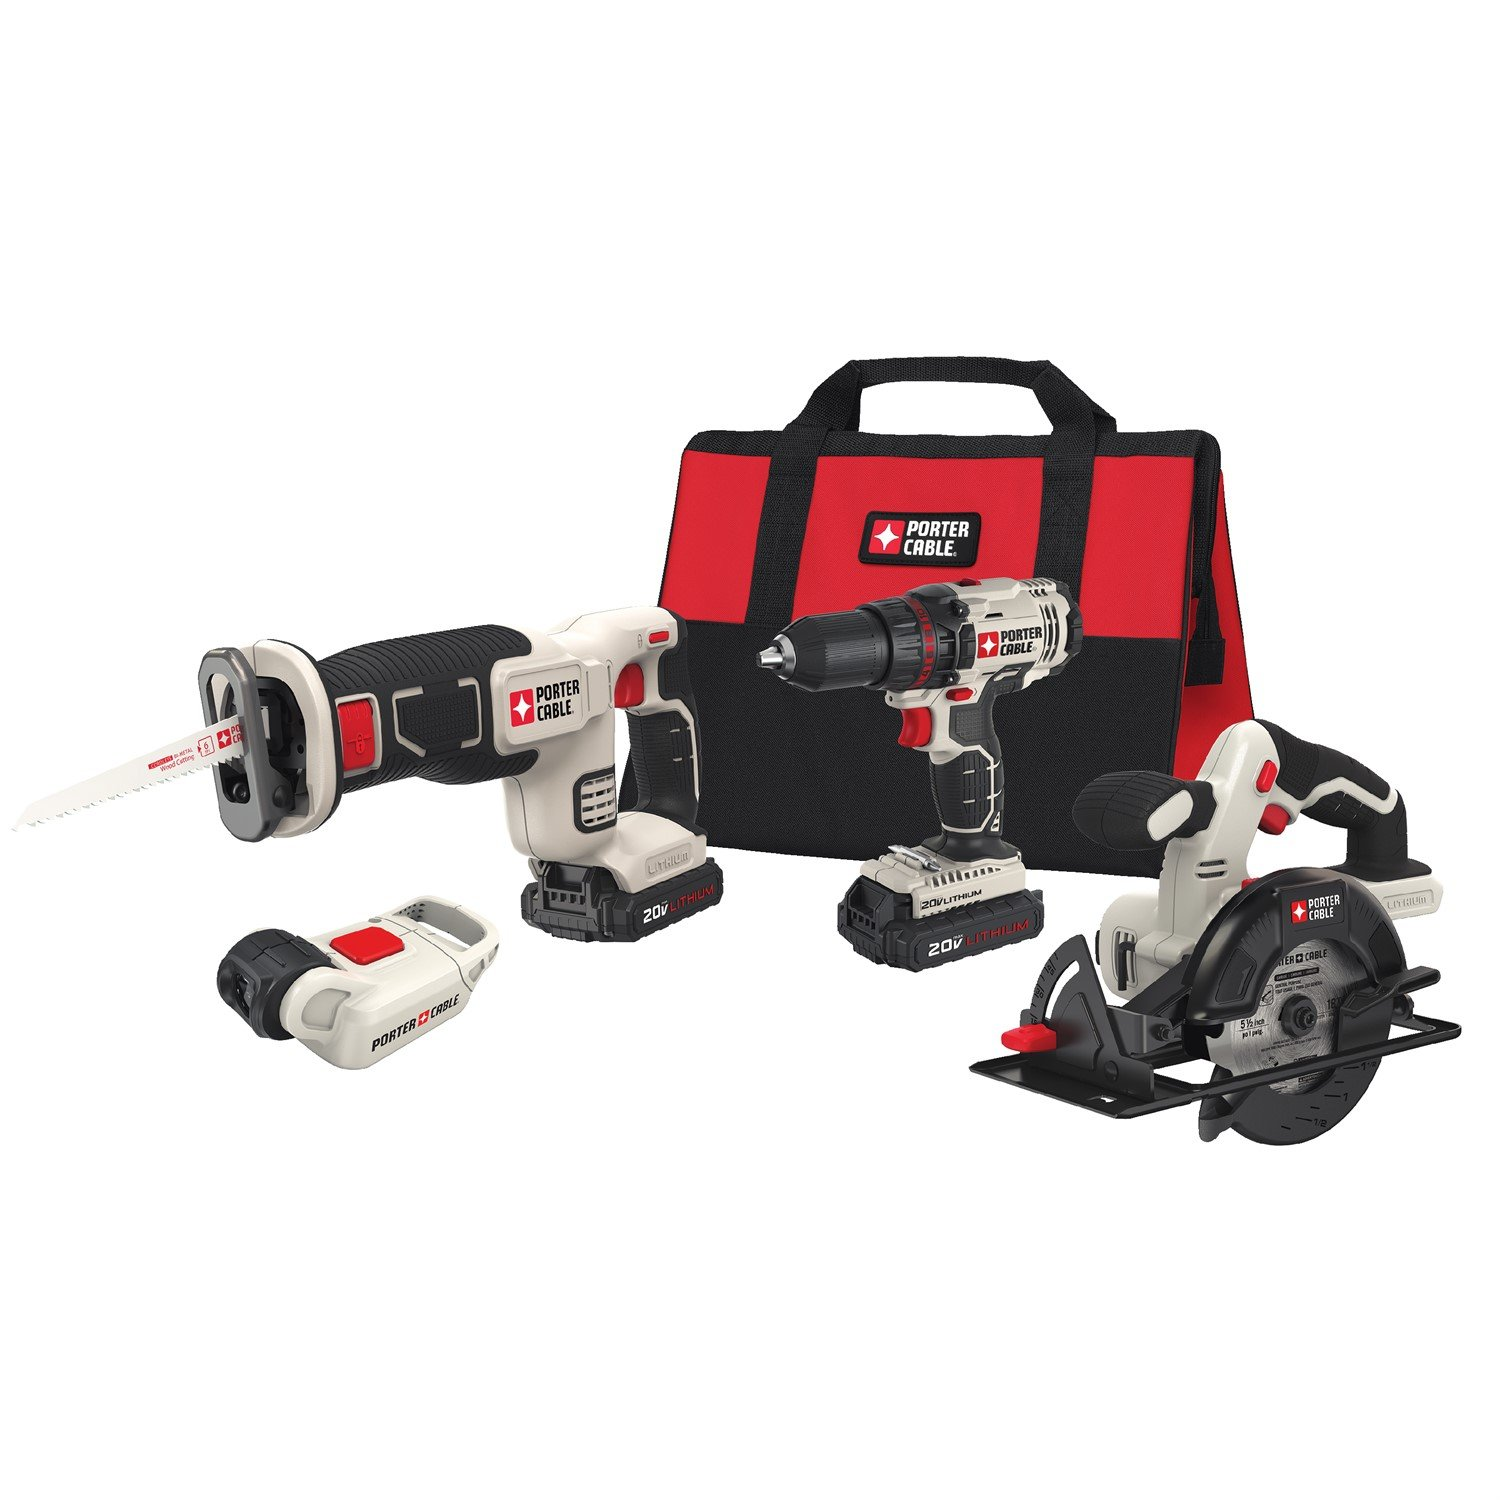 PORTER CABLE PCCK616L4 Power Tool Combo